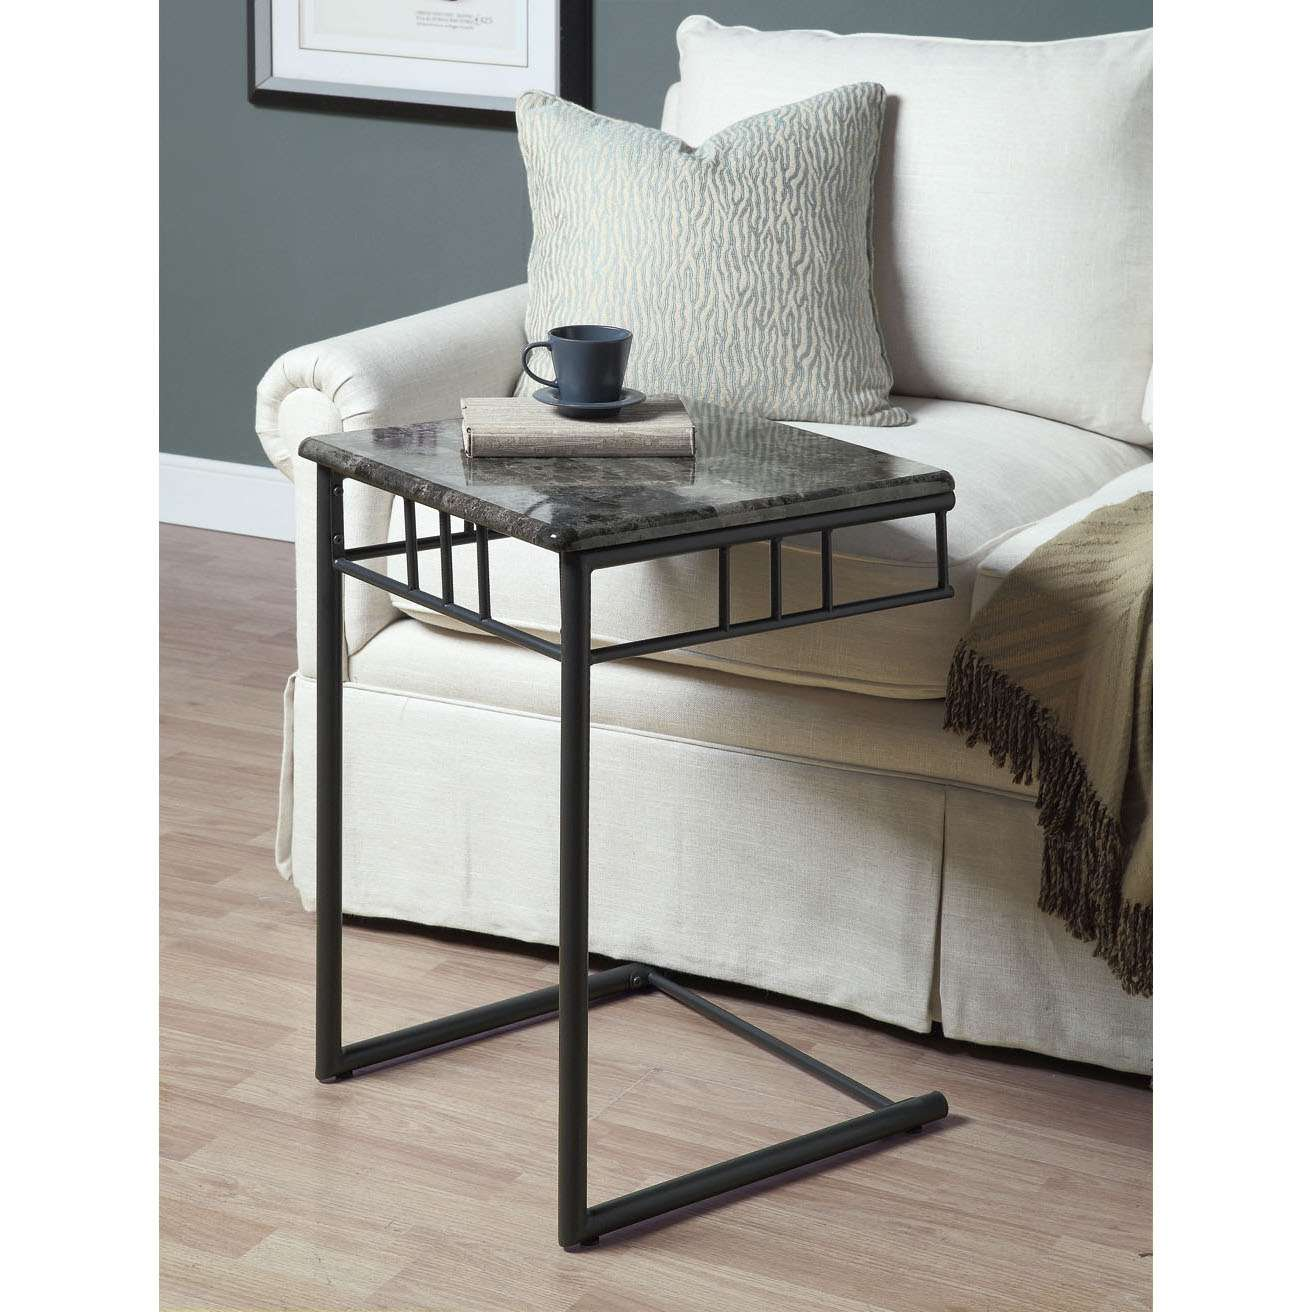 monarch specialties gray marble top accent table charcoal metal side cappuccino finish pottery barn flower nesting occasional tables battery operated lights with remote narrow